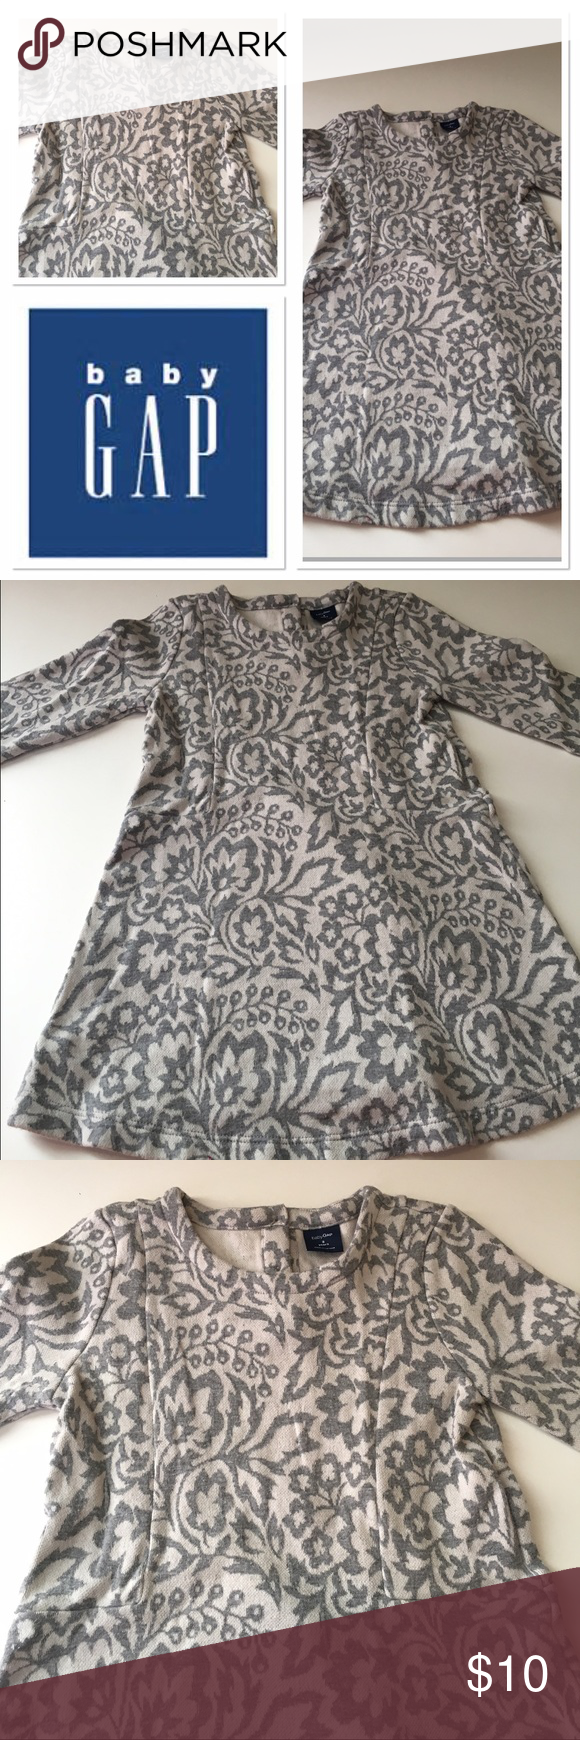 Baby Gap girls dress size 3T Adorable gray floral print dress from BabyGap GAP Dresses Casual